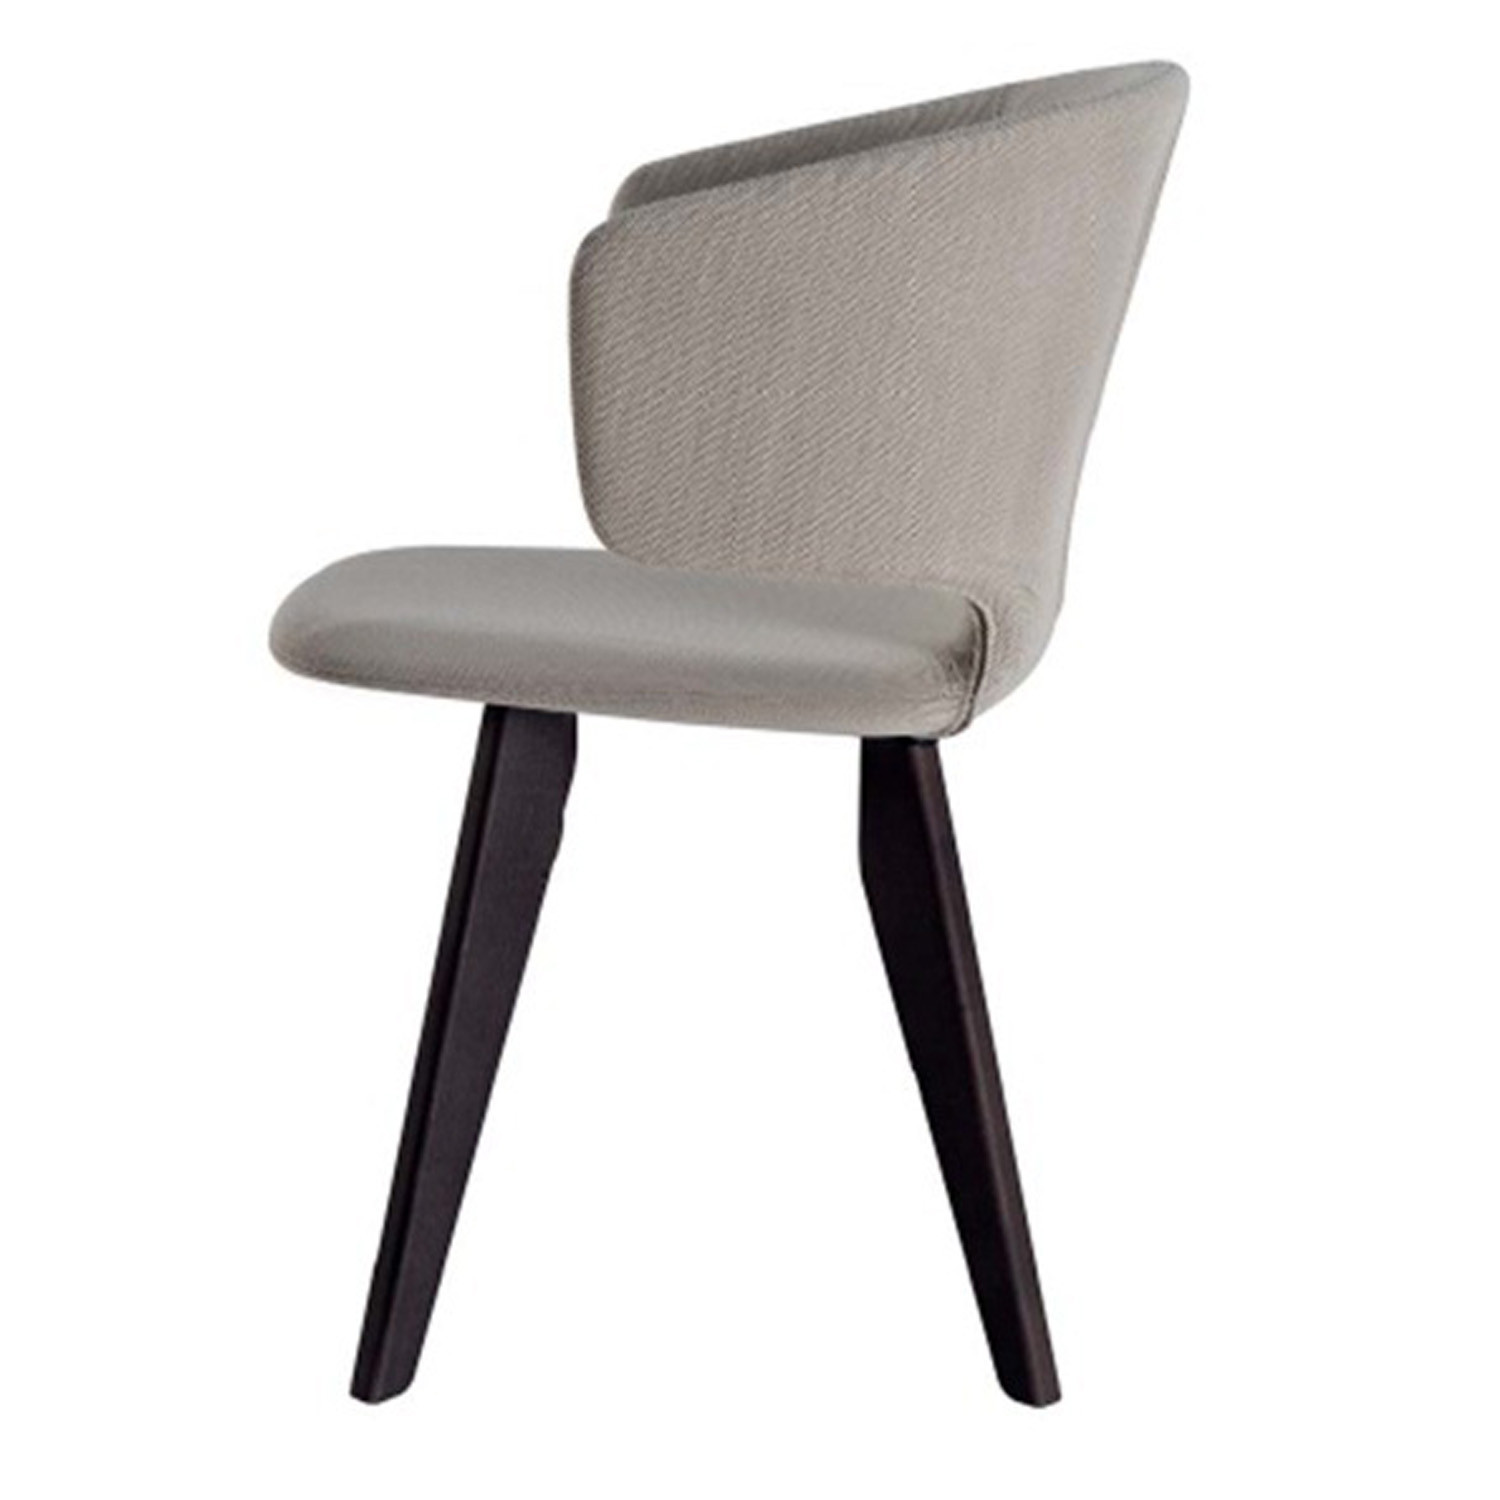 Taormina Wood Chair